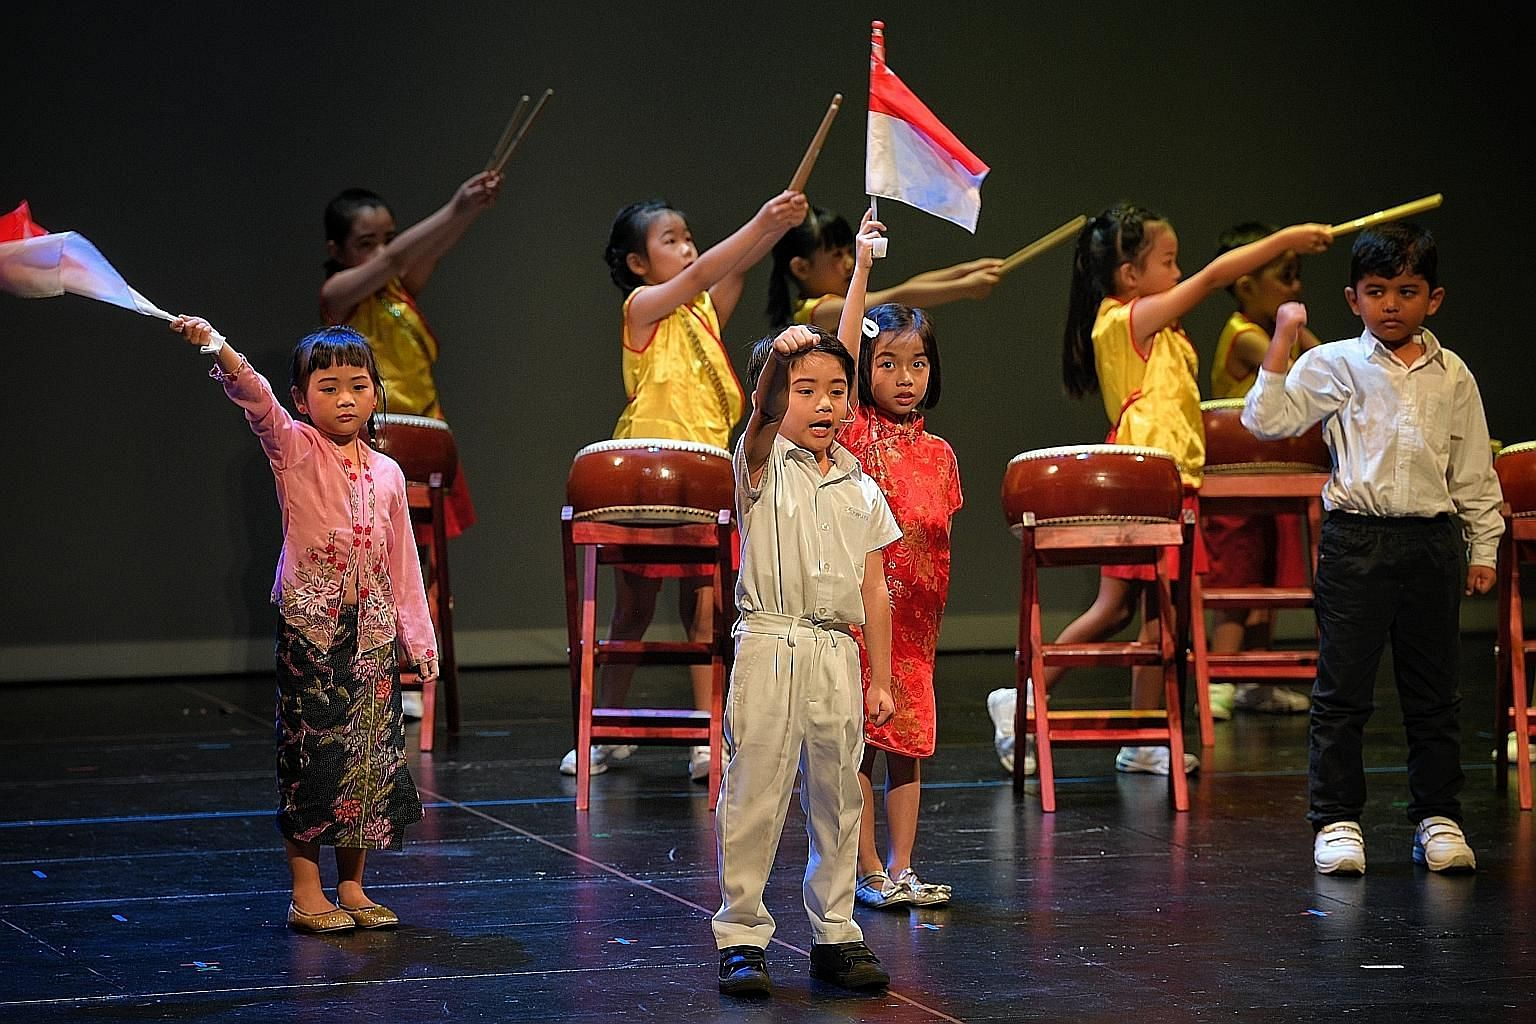 Children from PCF Sparkletots performing during the annual Family Day event held at the Victoria Theatre yesterday. ST PHOTO: MARK CHEONG